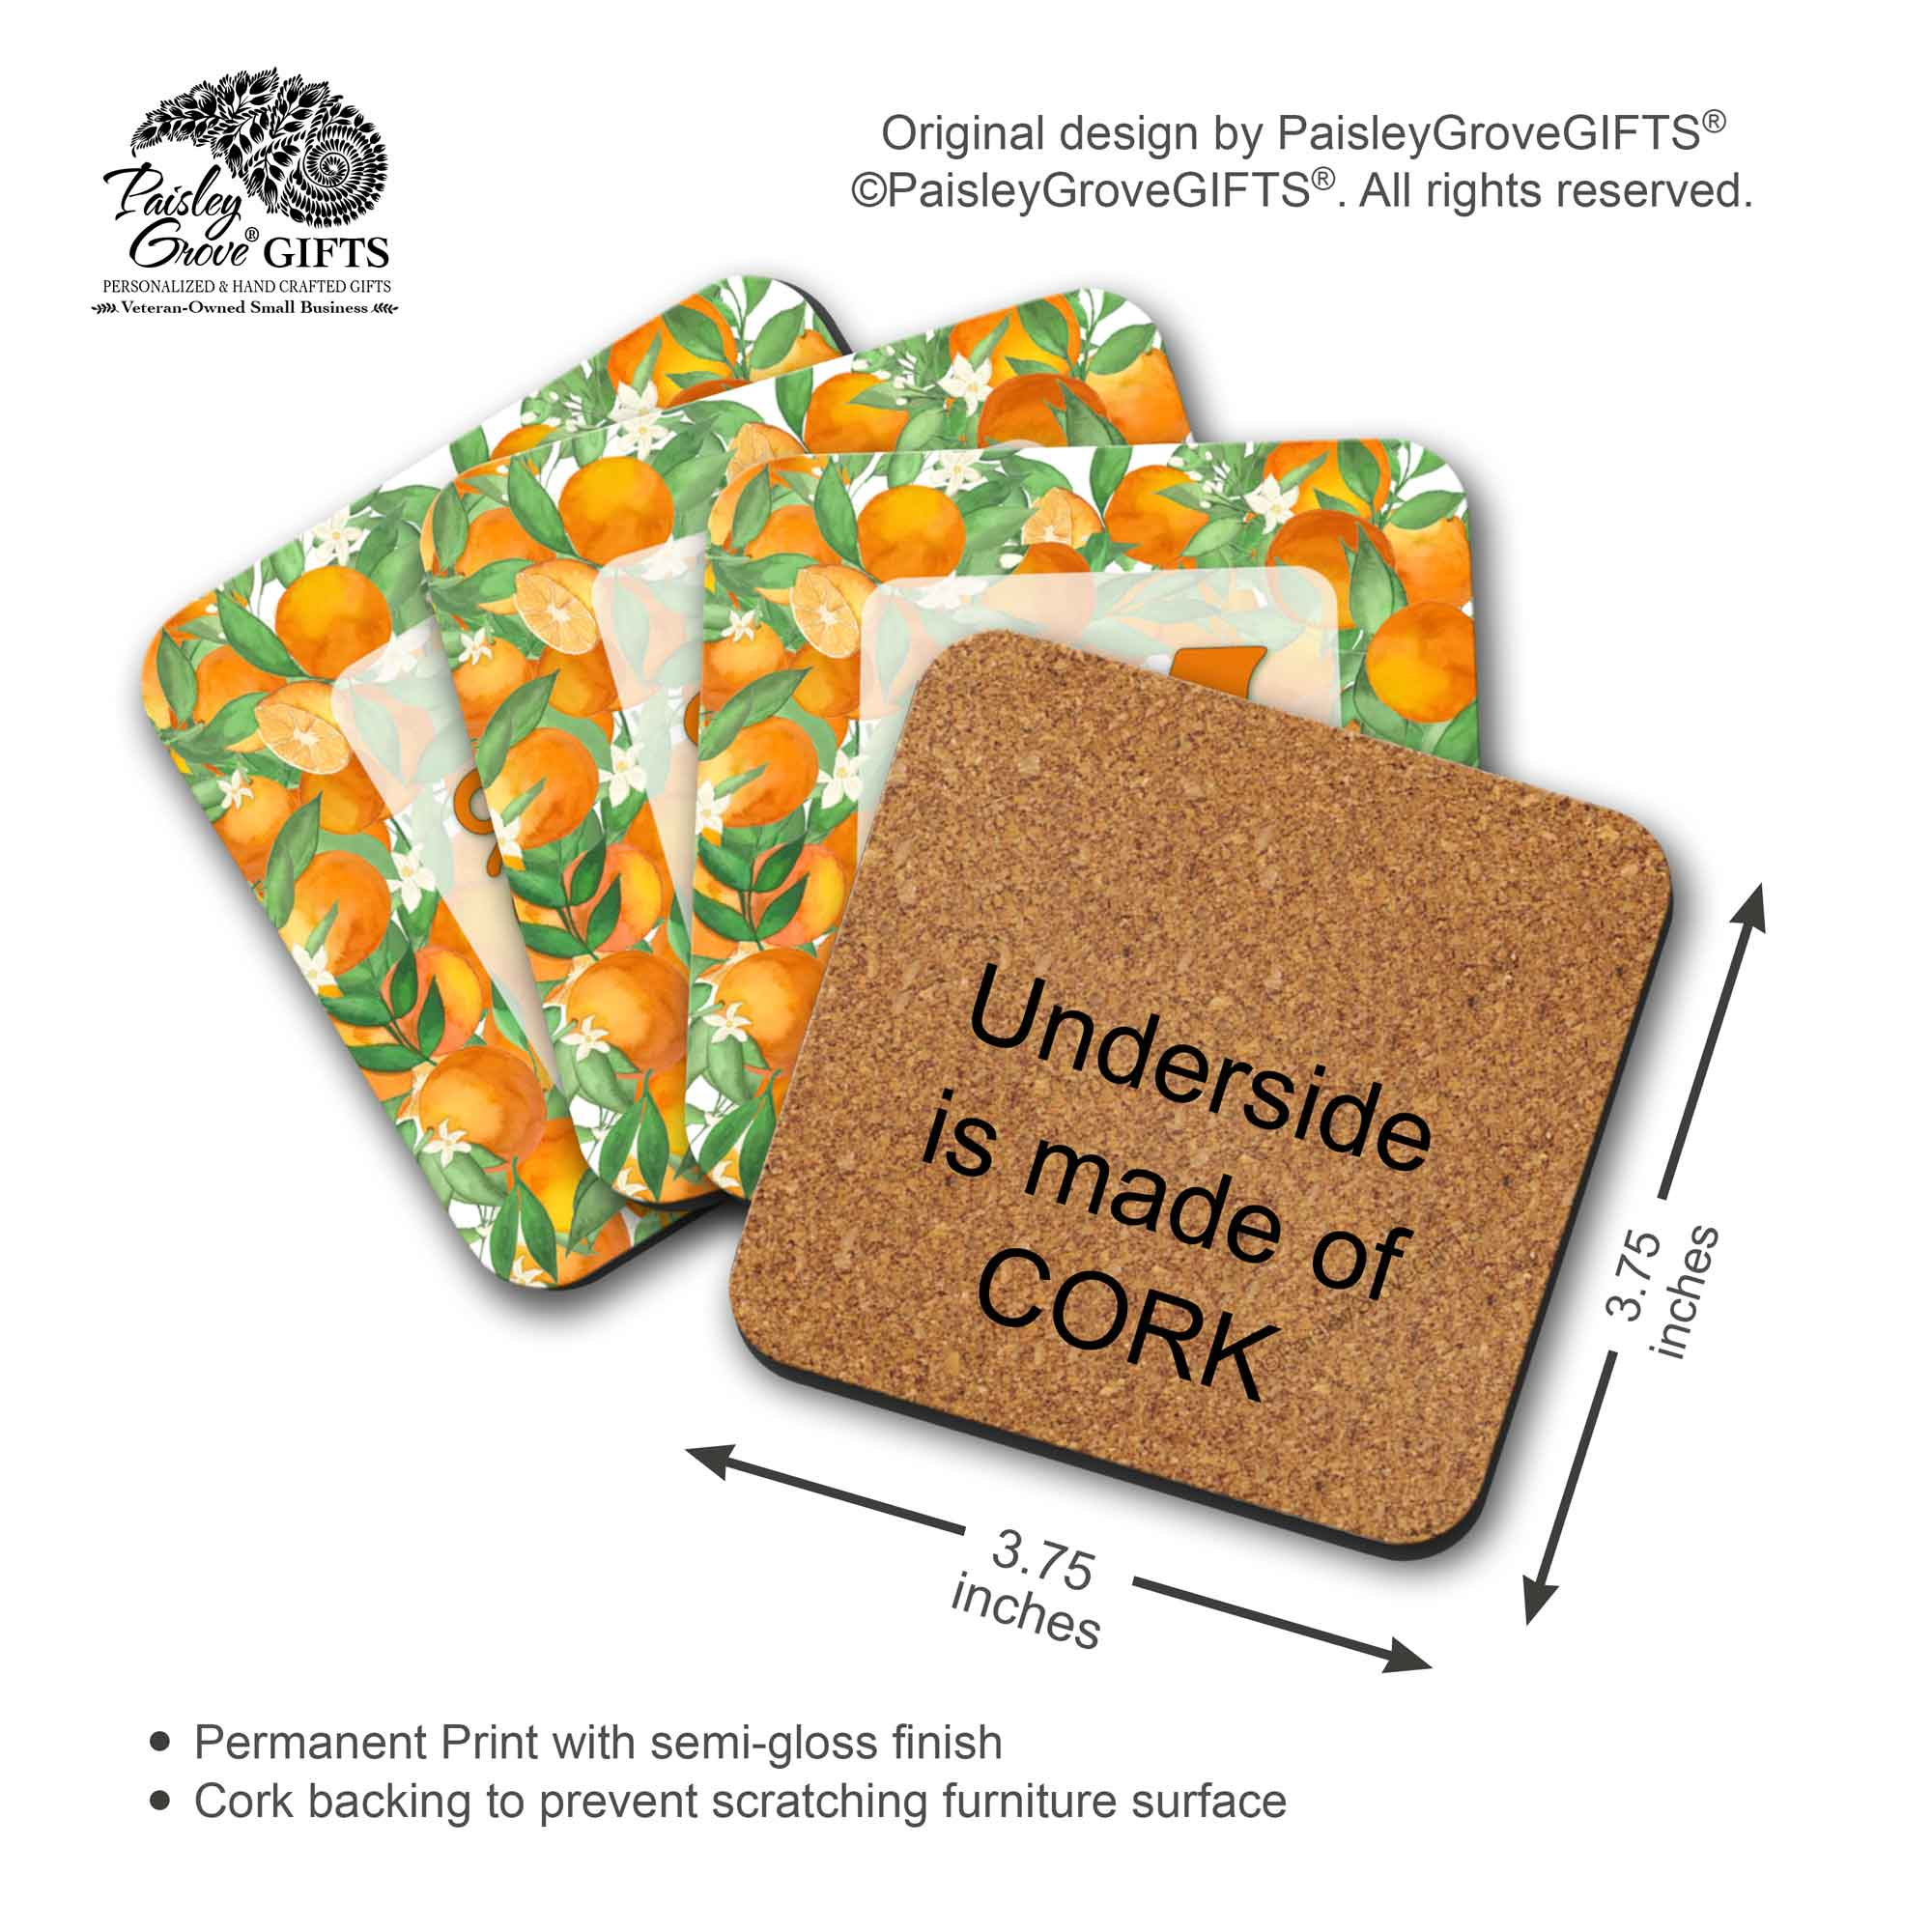 Copyright PaisleyGroveGIFTS S711a Measurement Information for Monogrammed Drink Coasters with Orange Fruit Design for  Housewarming Gift